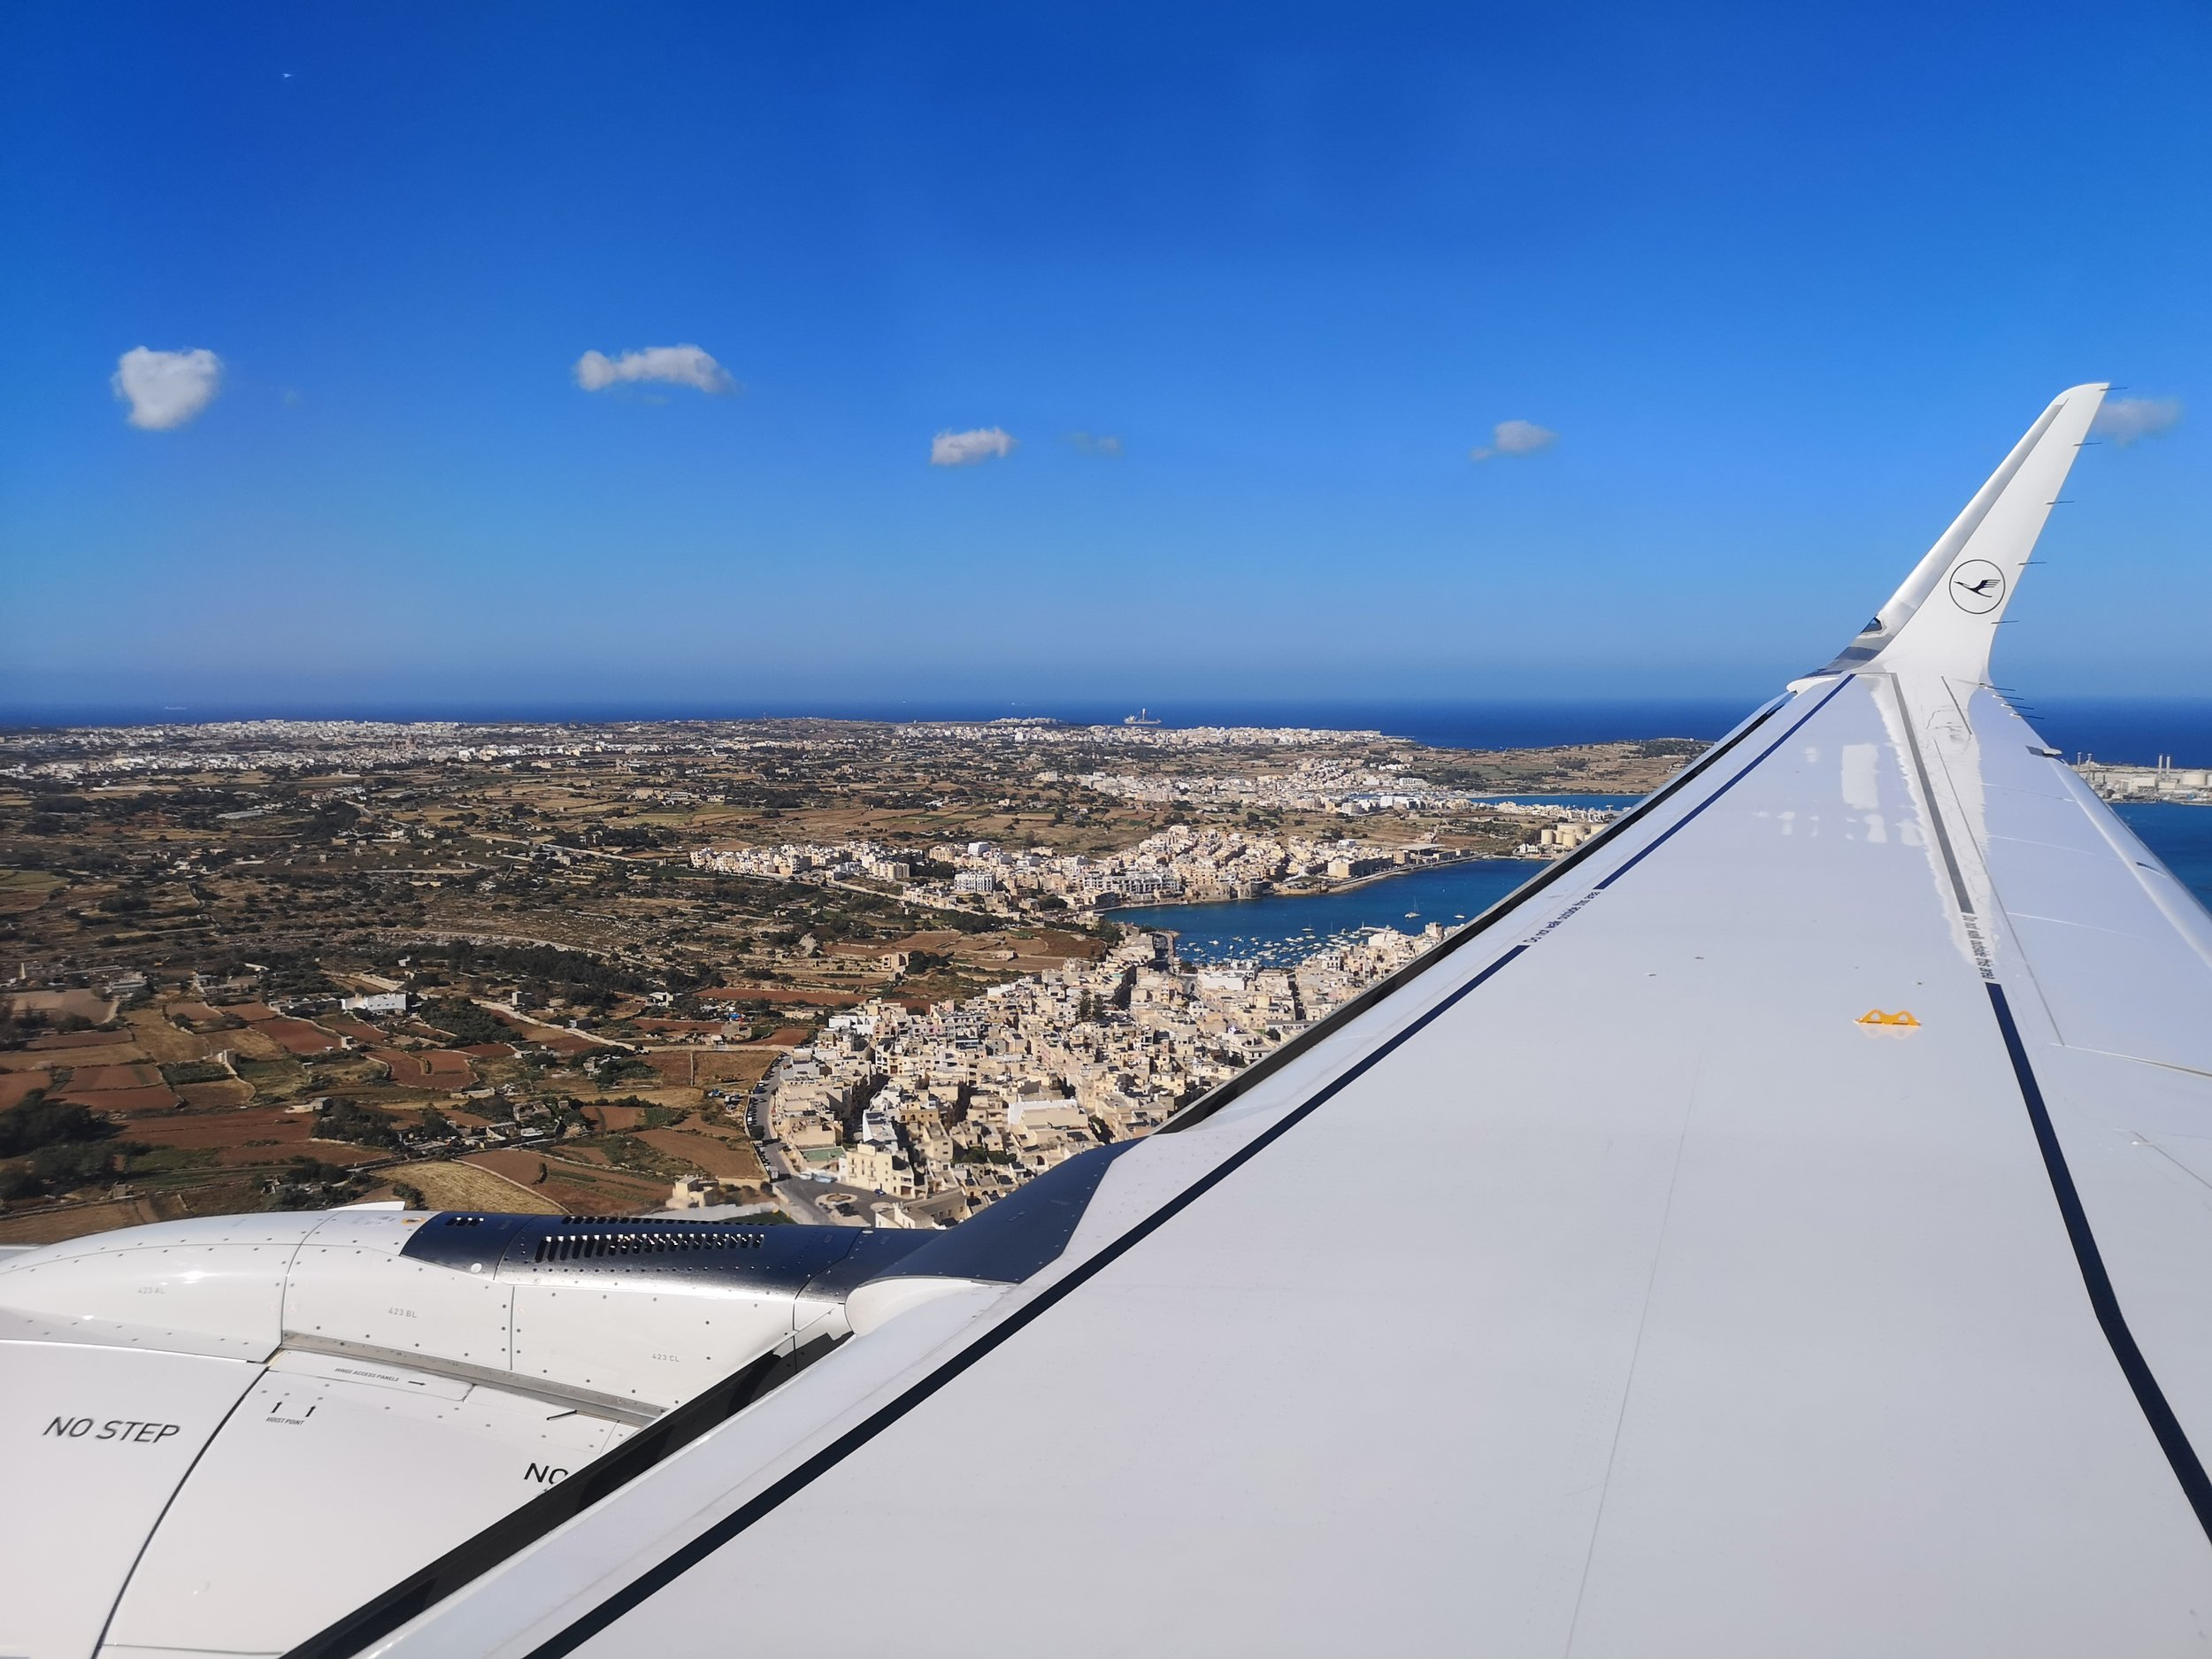 First attempt to land in Luqa...